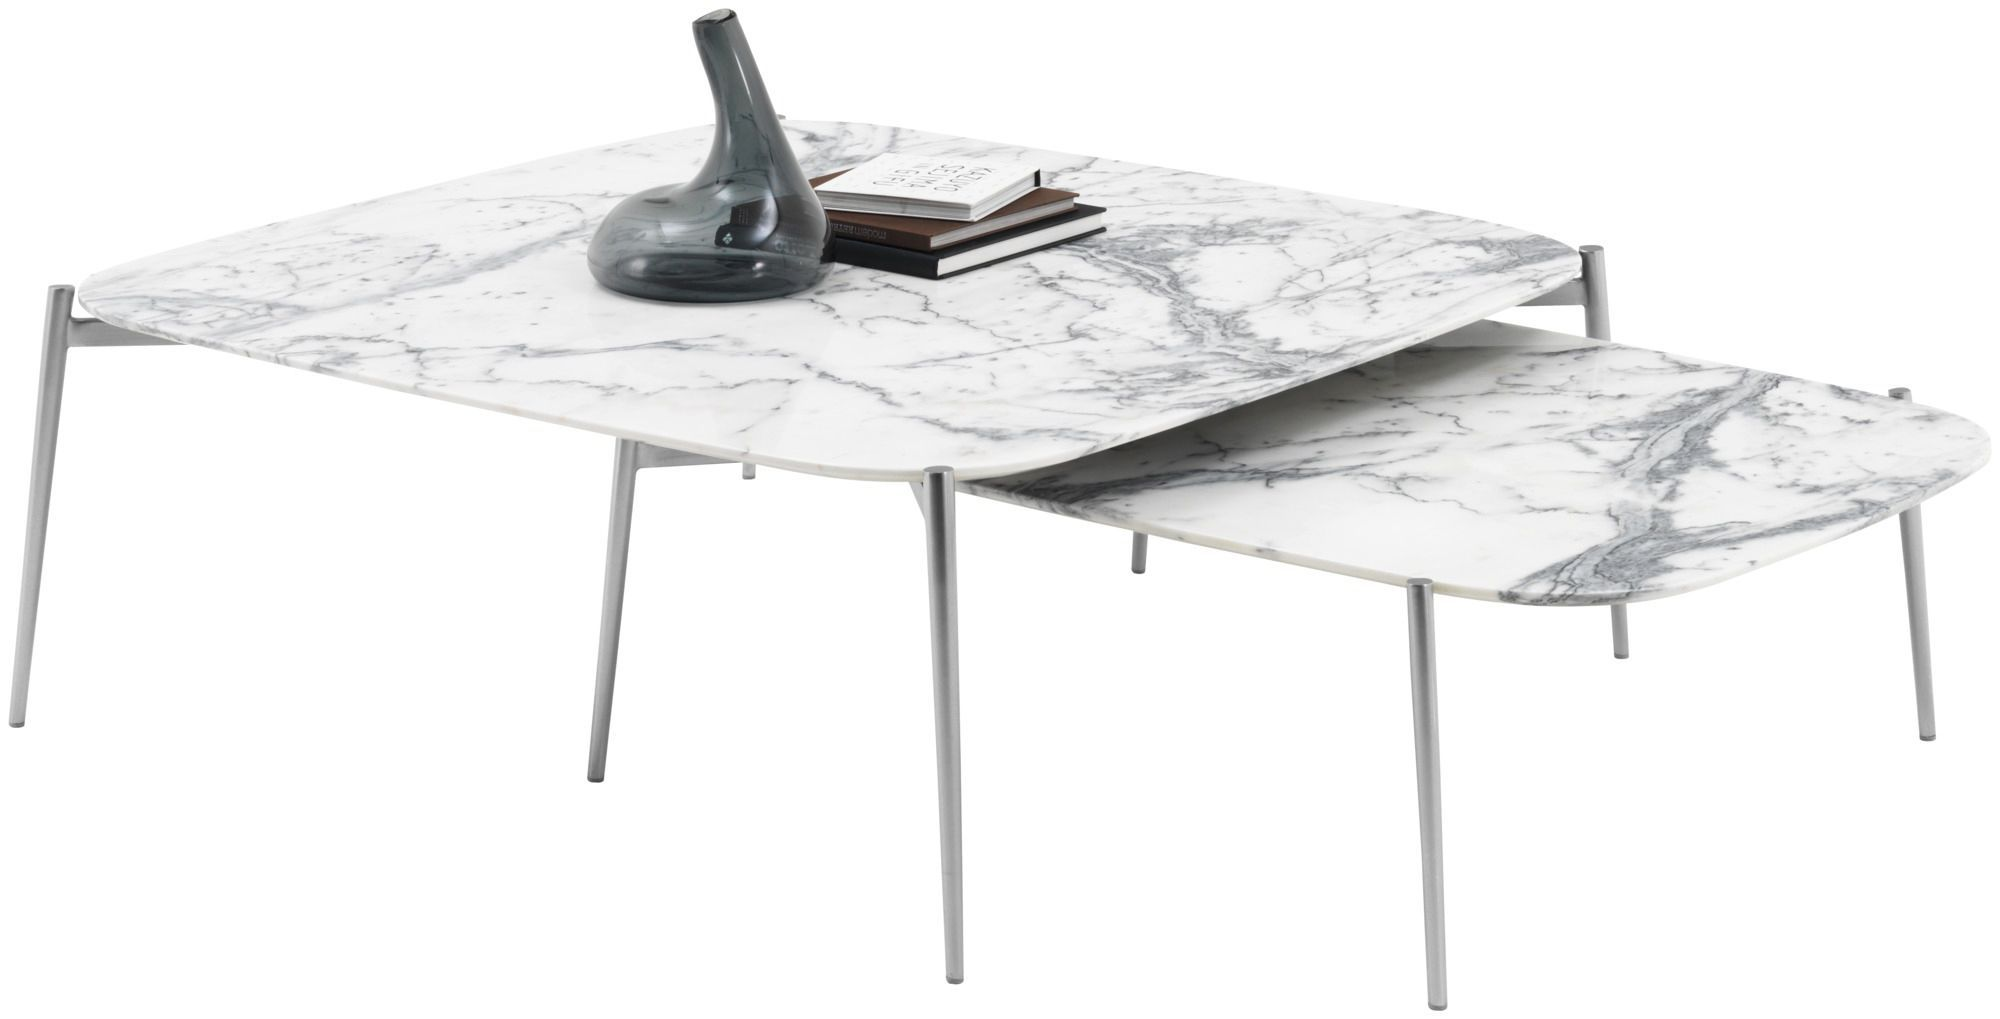 Surprising Contemporary Coffee Table Marble Mdf Steel Murcia Download Free Architecture Designs Salvmadebymaigaardcom